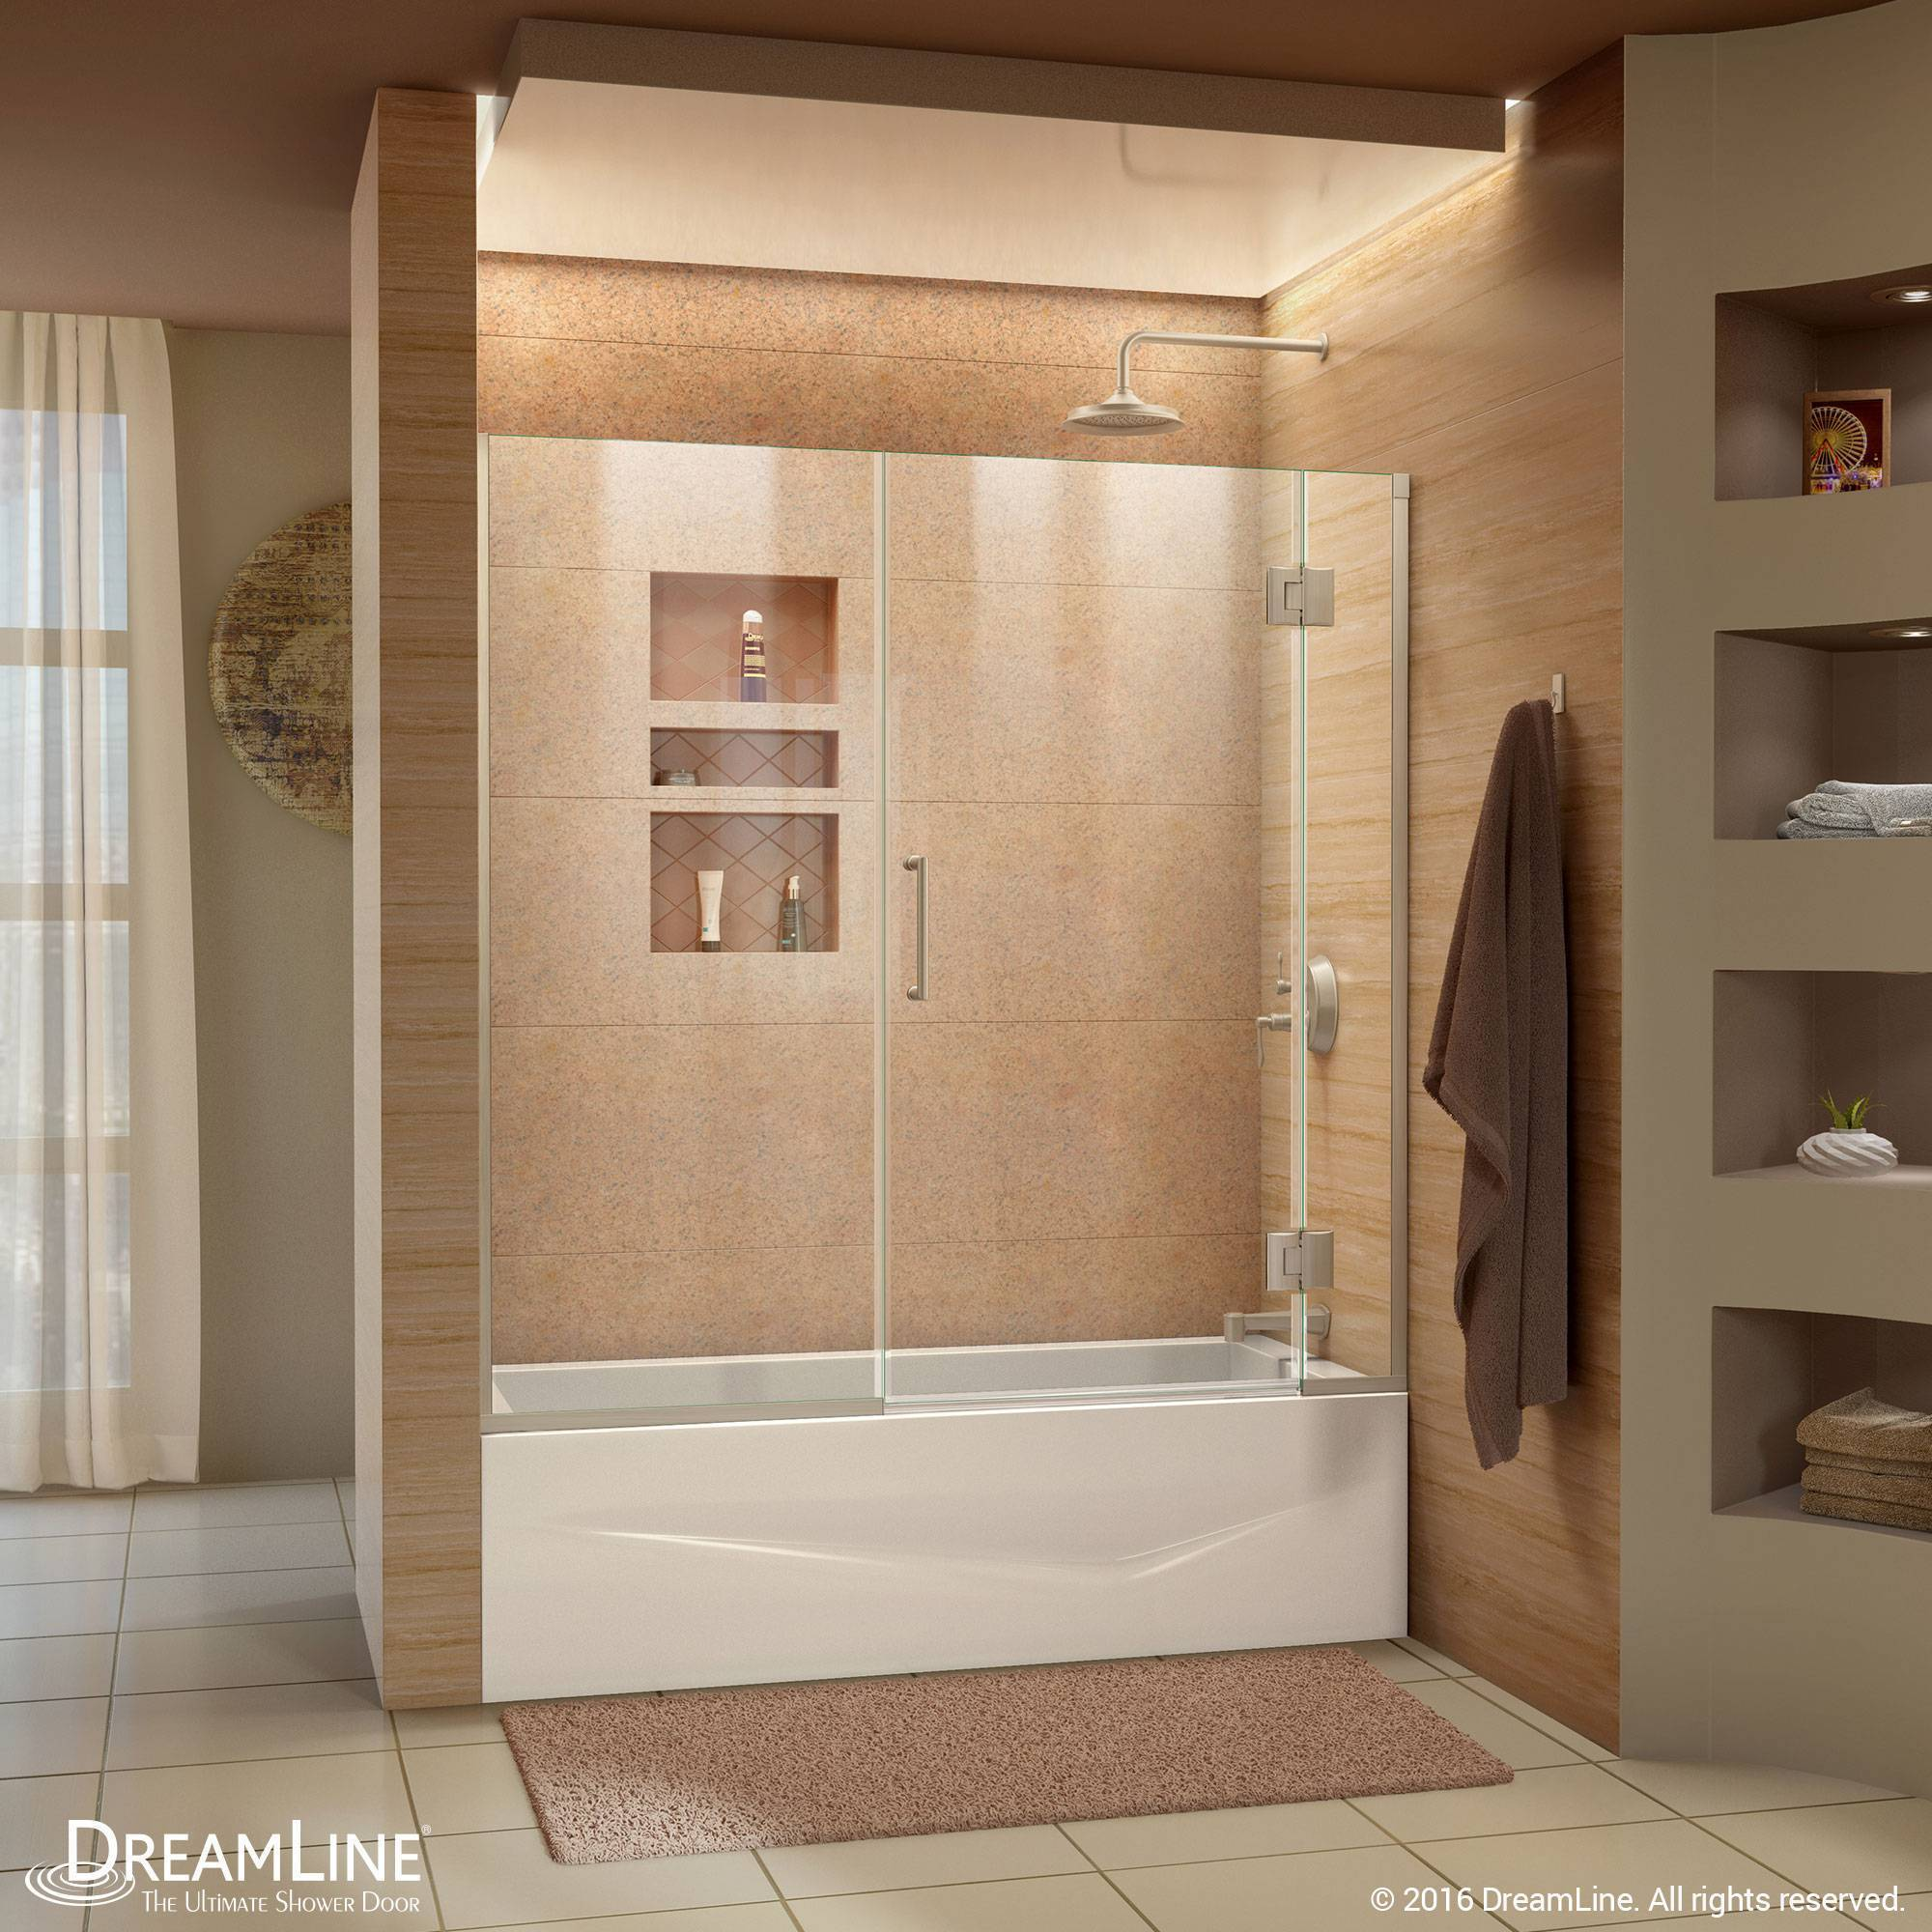 DreamLine Unidoor-X Hinged Tub Door